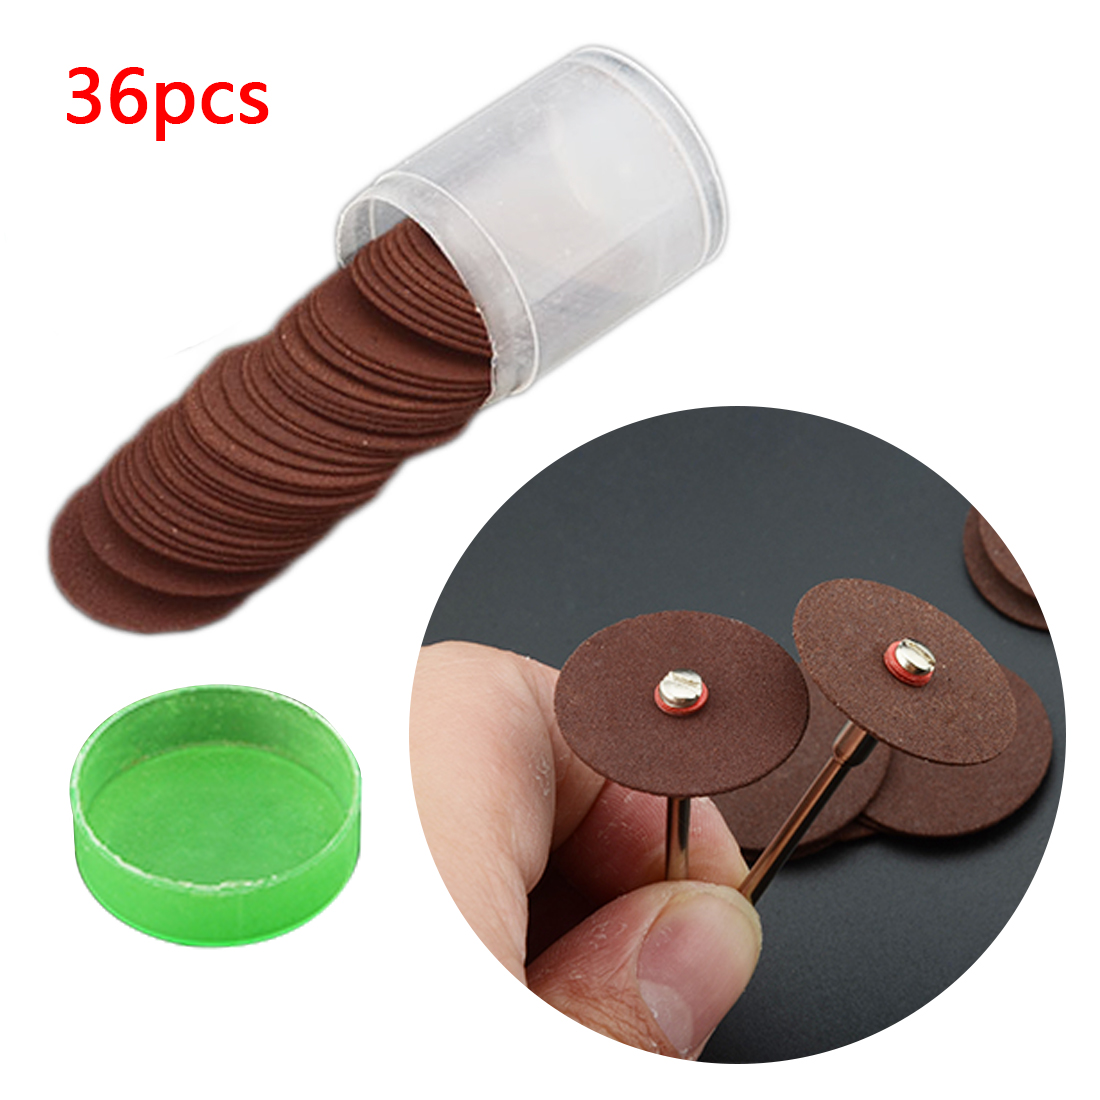 36pcs Dremel Accessories 24mm Abrasive Disc Cutting Discs Reinforced Cut Off Grinding Wheels Rotary Blade Disc Tool